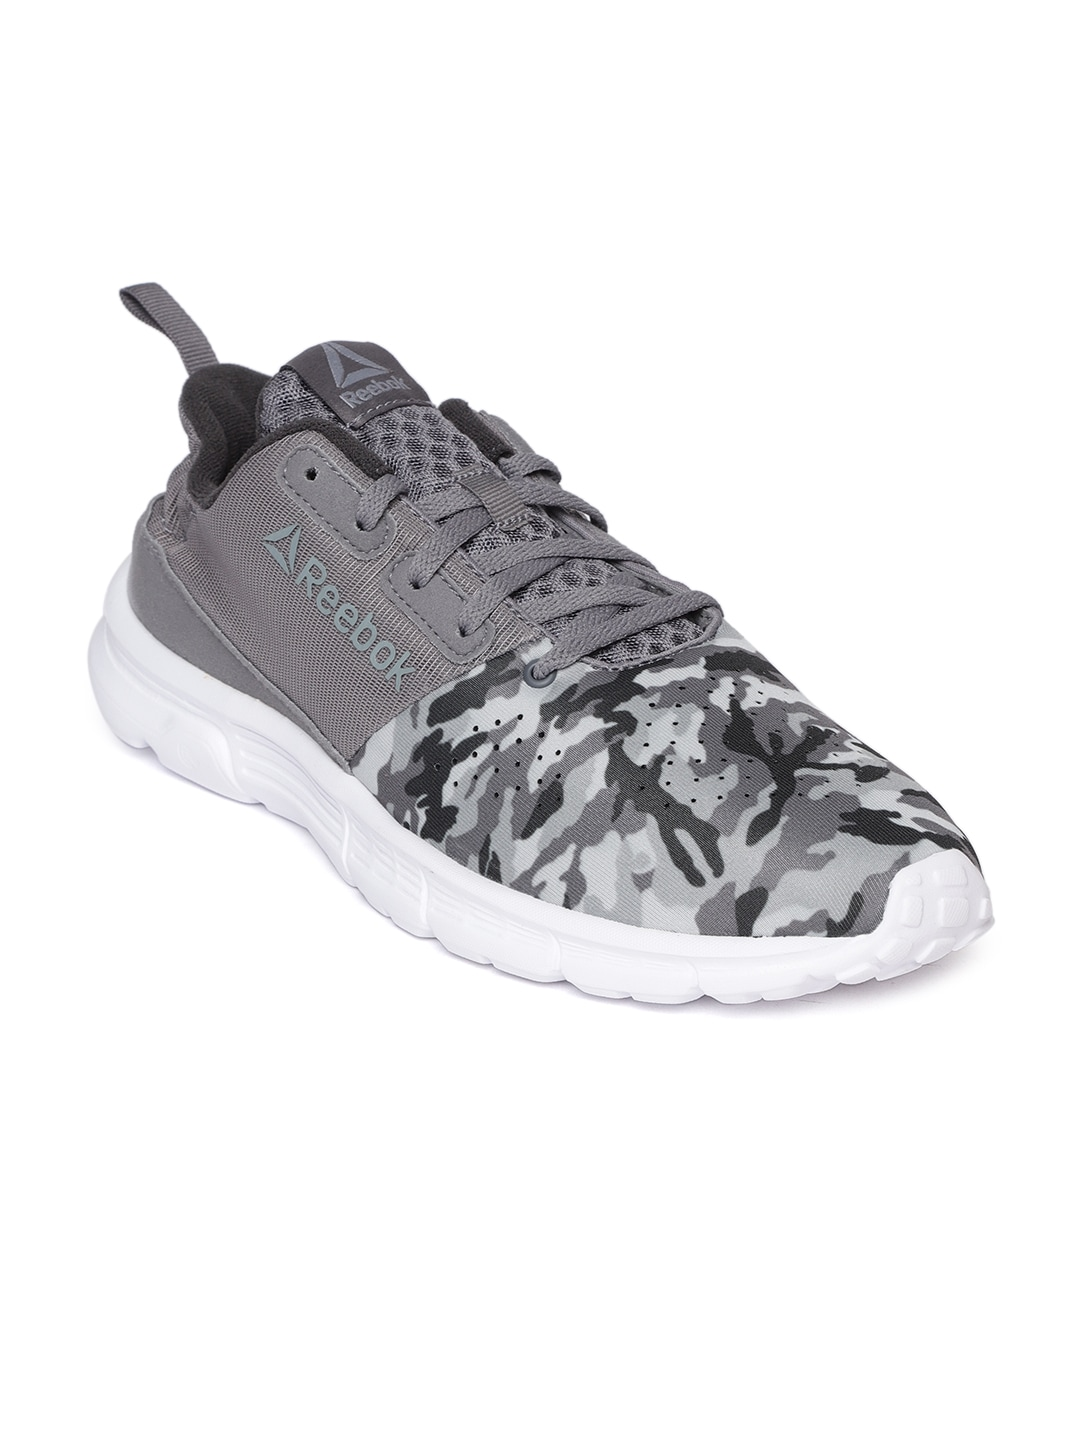 a170ca3dbba8 Men s Reebok Sports Shoes - Buy Reebok Sports Shoes for Men Online in India